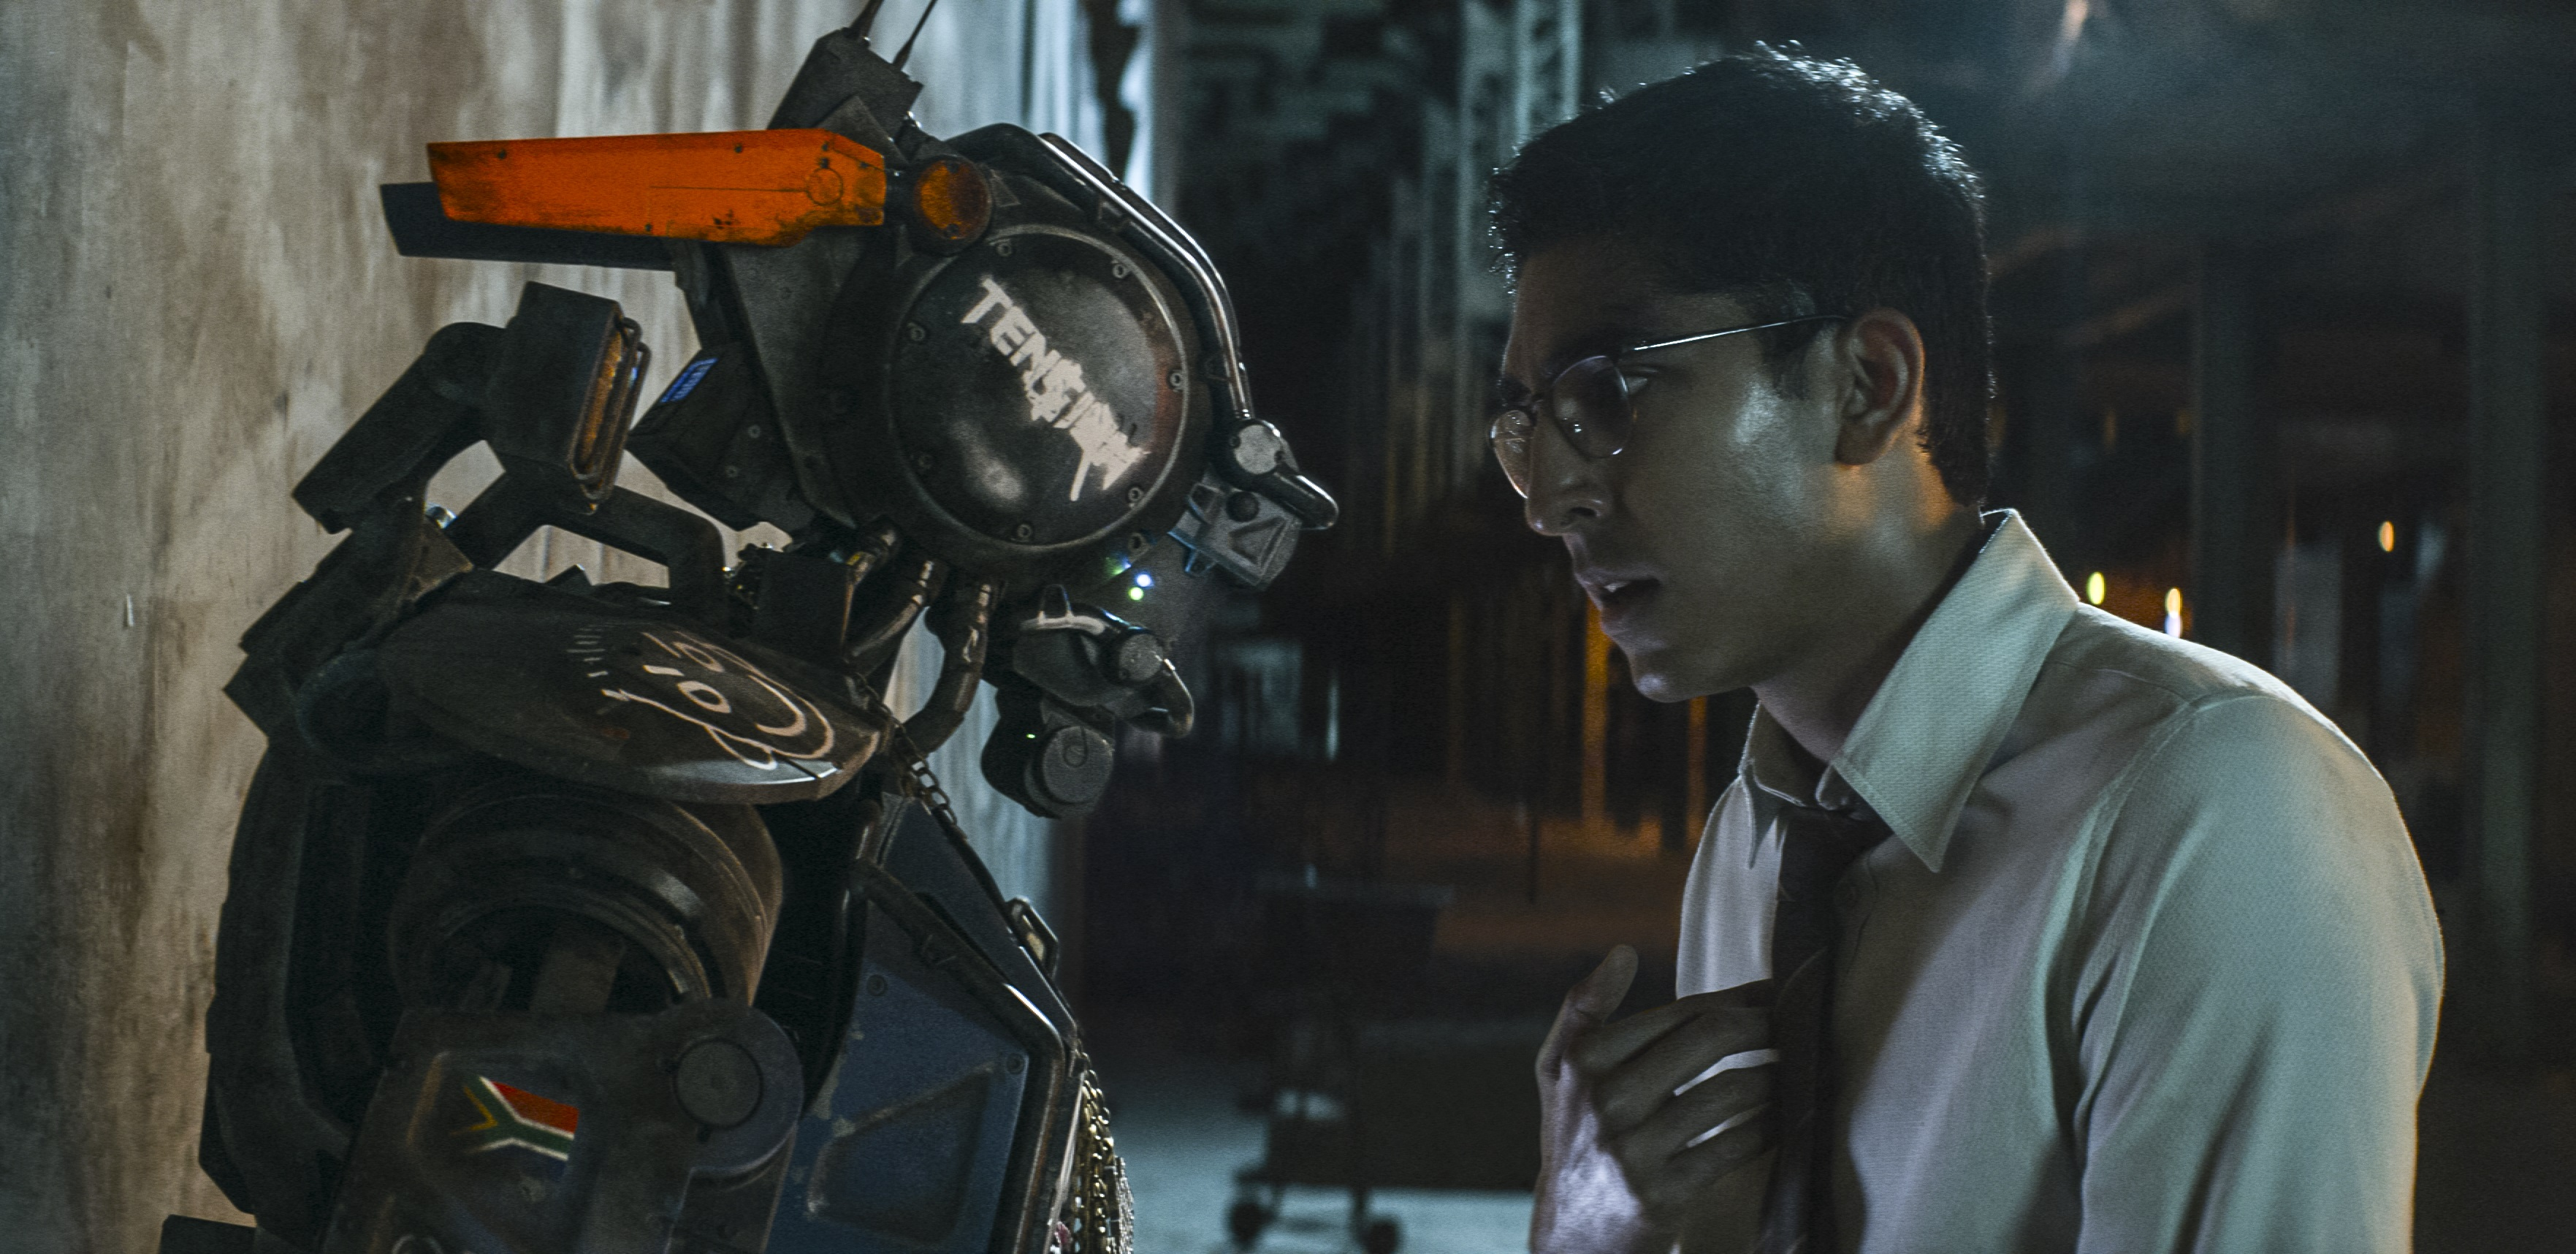 Deon (Dev Patel) boots up Chappie with the new program.